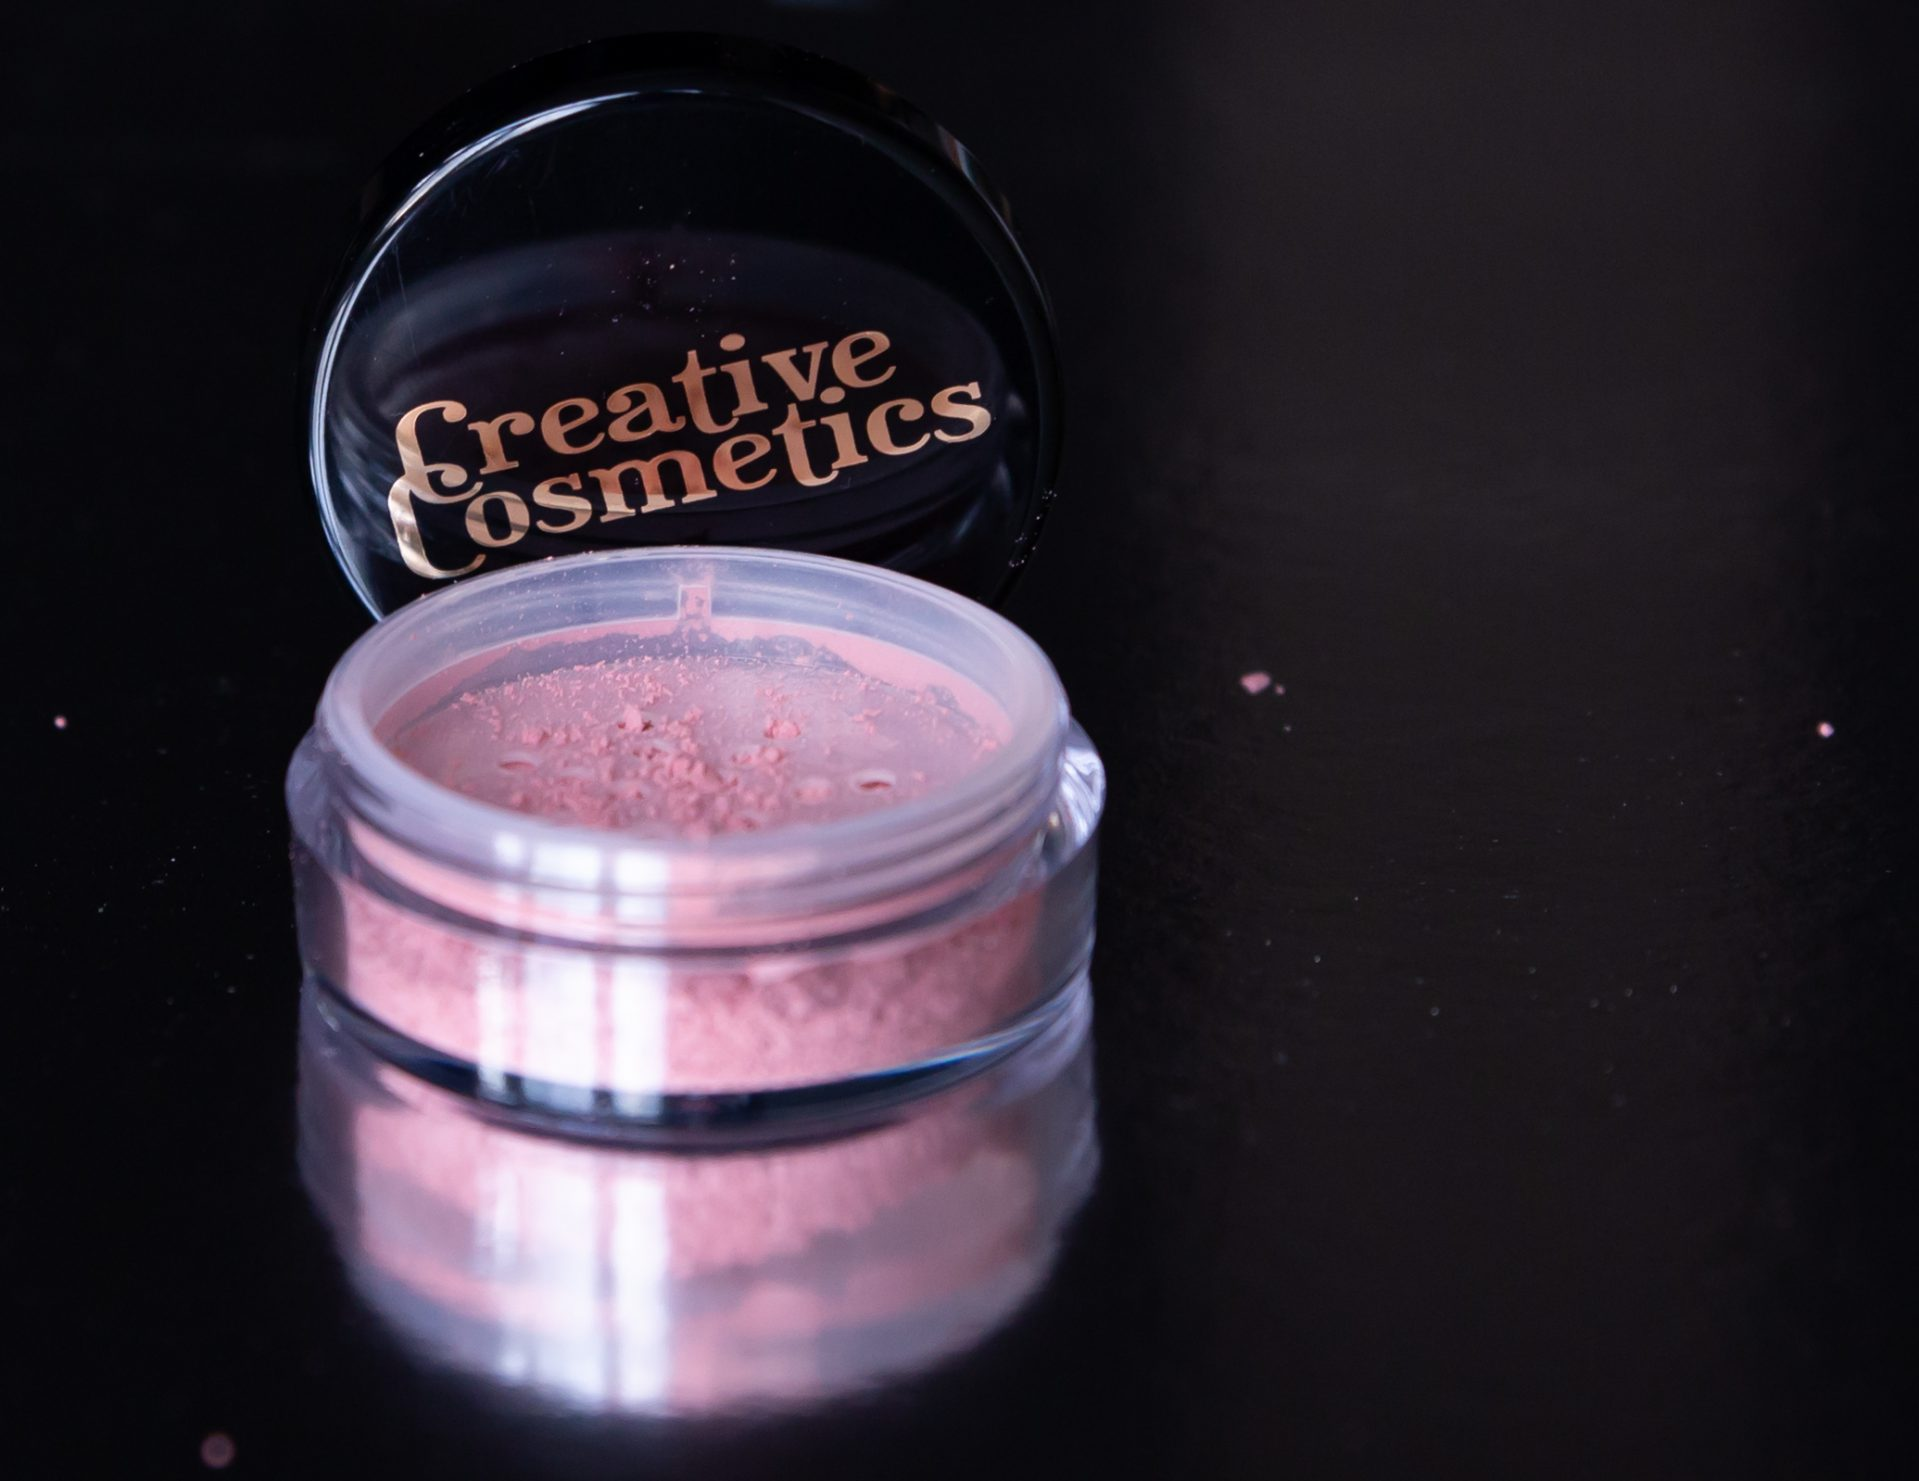 StyleTone november - Creative Cosmetics blush